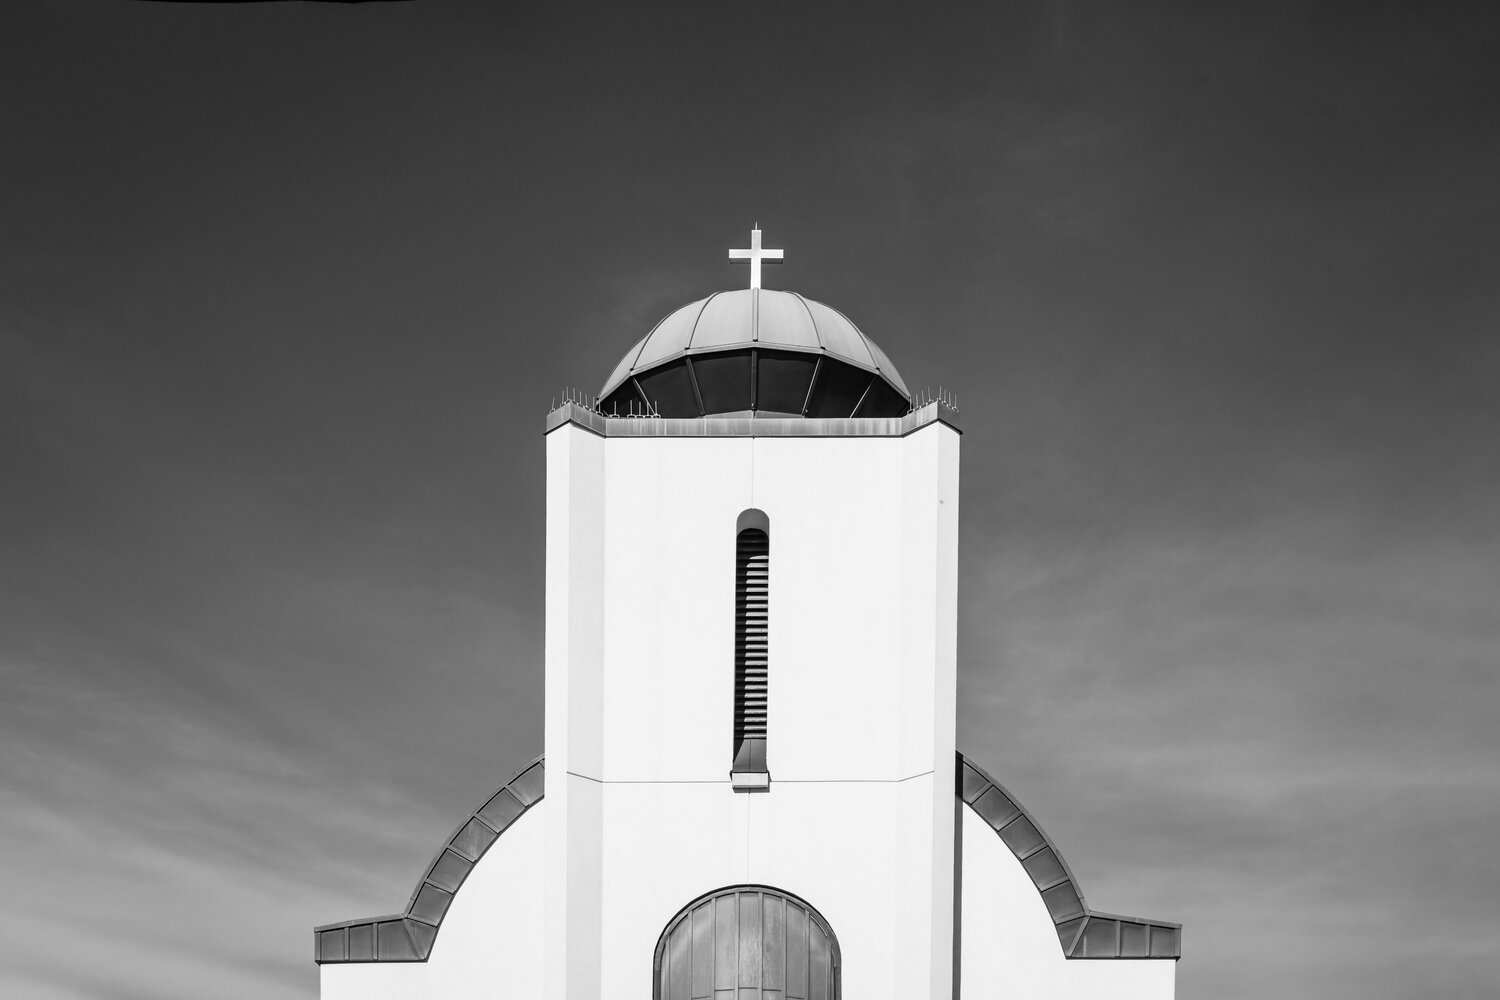 Documenting Fifty Modernist Churches in Toronto by Photographer Amanda Large